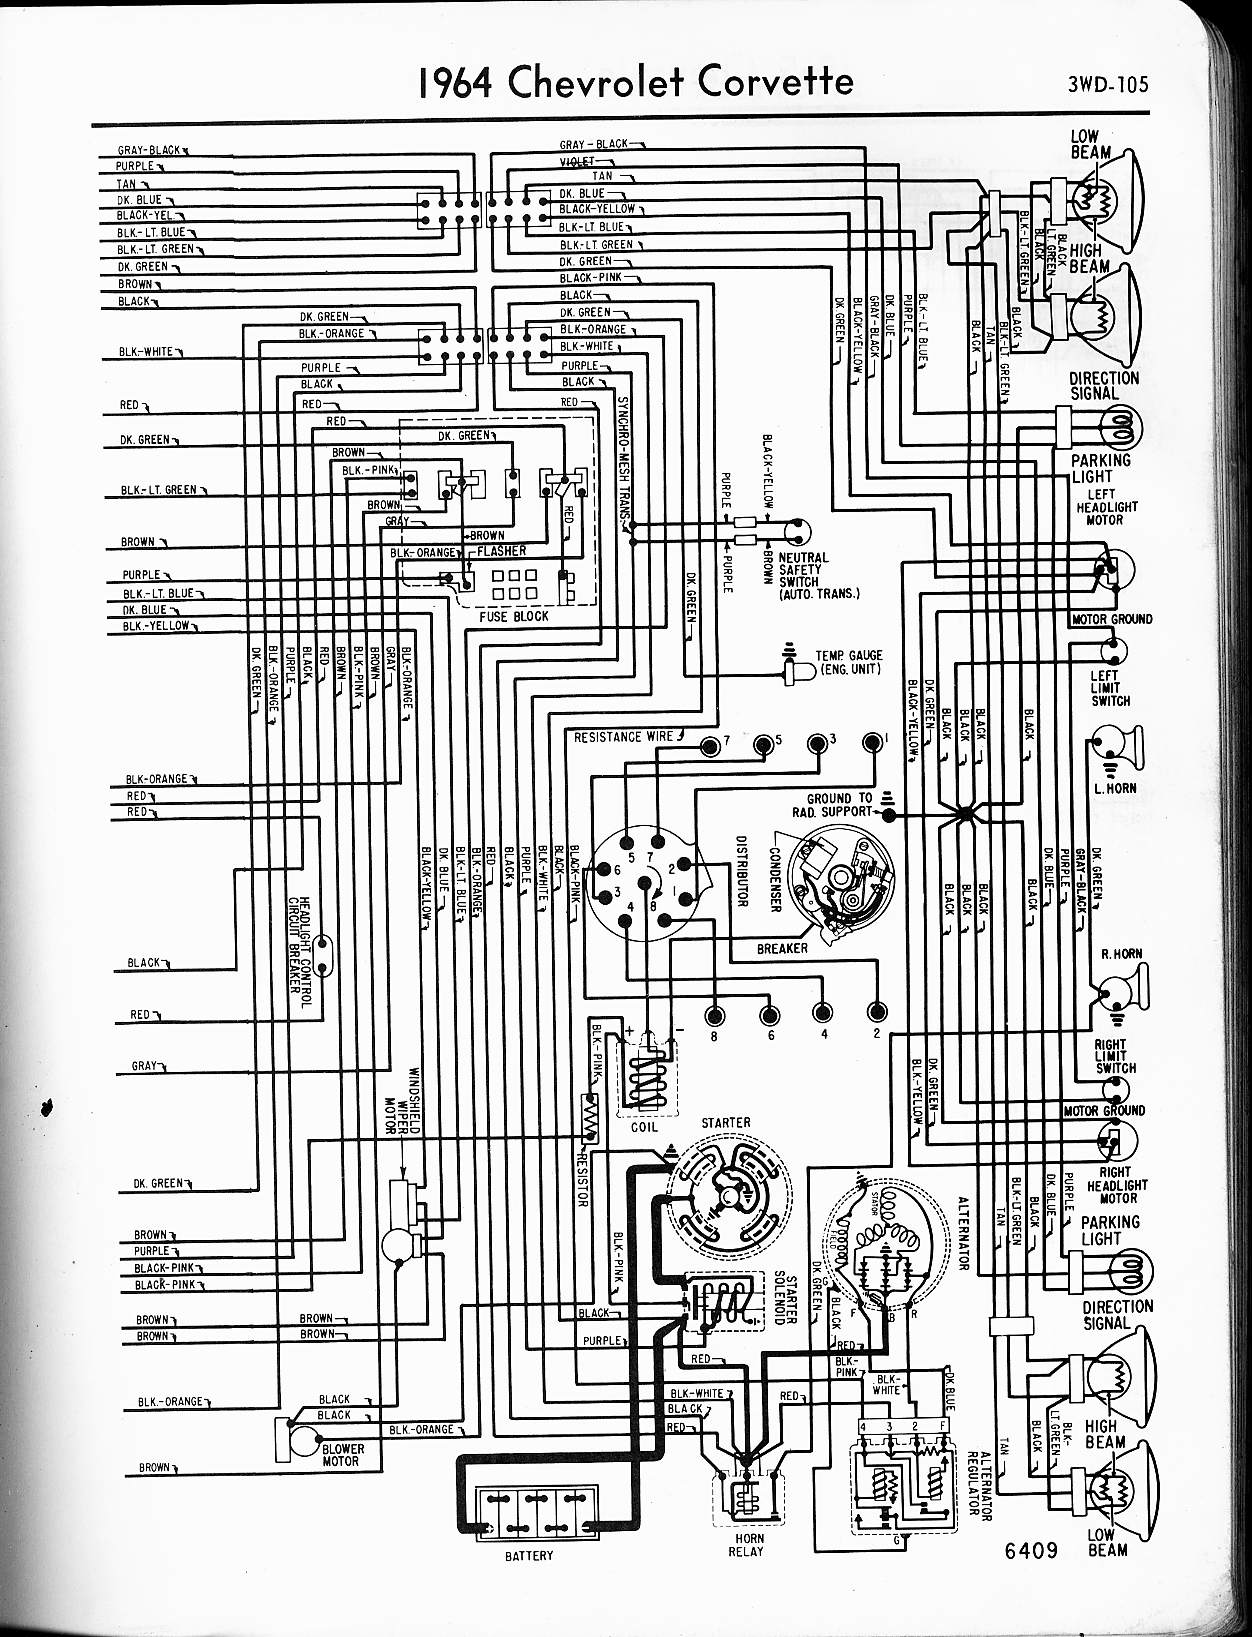 MWireChev64_3WD 105 57 65 chevy wiring diagrams 65 chevy wiring harness at suagrazia.org